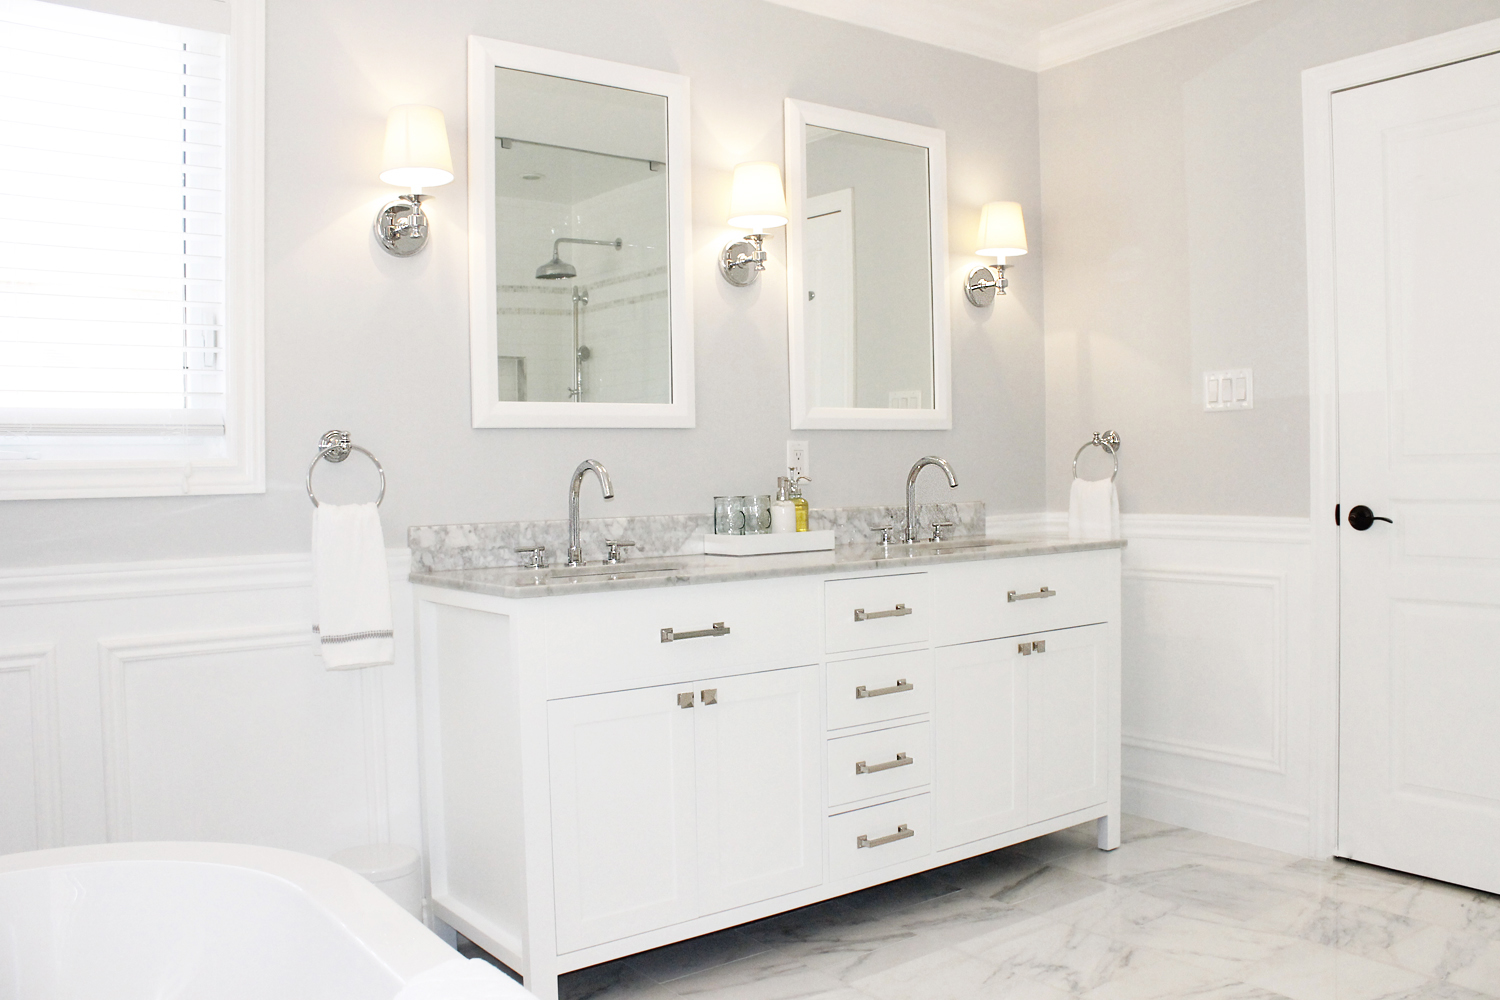 Good Contemporary bathroom vanity choosing glass material to furnish your bathroom